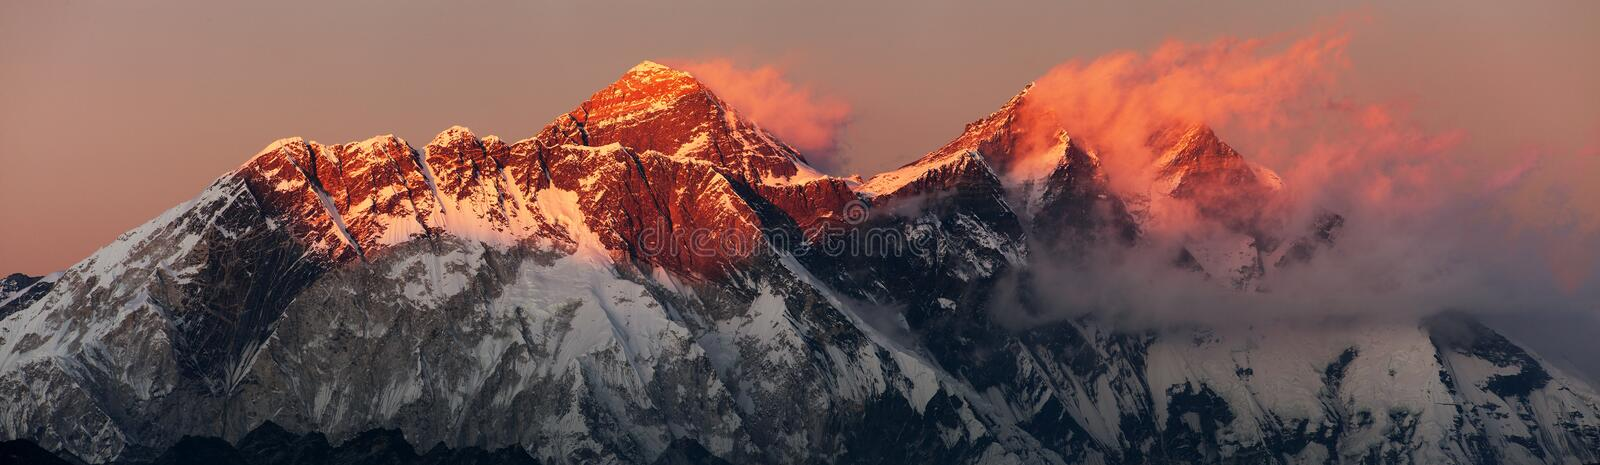 Evening sunset red colored view of mount Everest Lhotse and Nuptse south rock face with beautiful clouds from Kongde village,. Khumbu valley, Solukhumbu, Nepal stock photos